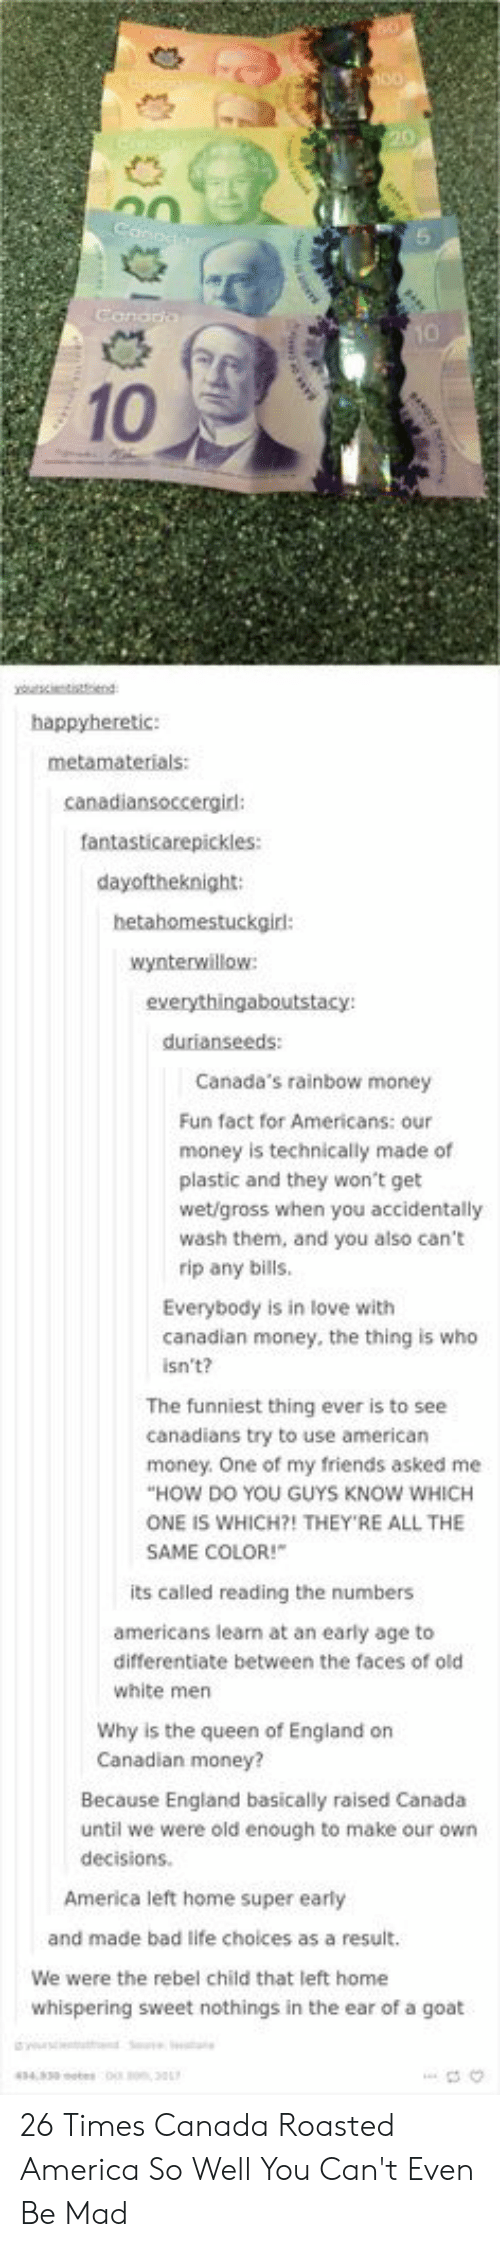 Canadians: 10  happyheretic:  canadiansoccergird:  fantasticarepickles:  dayoftheknight:  hetahomestuckgir:  wynterwillow  durianseeds:  Canada's rainbow money  Fun fact for Americans: our  money is technically made of  plastic and they won't get  wet/gross when you accidentally  wash them, and you also can't  rip any bills  Everybody is in love with  canadian money, the thing is who  isn't?  The funniest thing ever is to see  canadians try to use american  HOW DO YOU GUYS KNOW WHICH  SAME COLOR!  money. One of my friends asked me  ONE IS WHICH?! THEY'RE ALL THE  its called reading the numbers  americans learn at an early age to  differentiate between the faces of old  white men  Why is the queen of England on  Canadian money?  Because England basically raised Canada  until we were old enough to make our own  decisions.  America left home super early  and made bad life choices as a result.  We were the rebel child that left home  whispering sweet nothings in the ear of a goat 26 Times Canada Roasted America So Well You Can't Even Be Mad